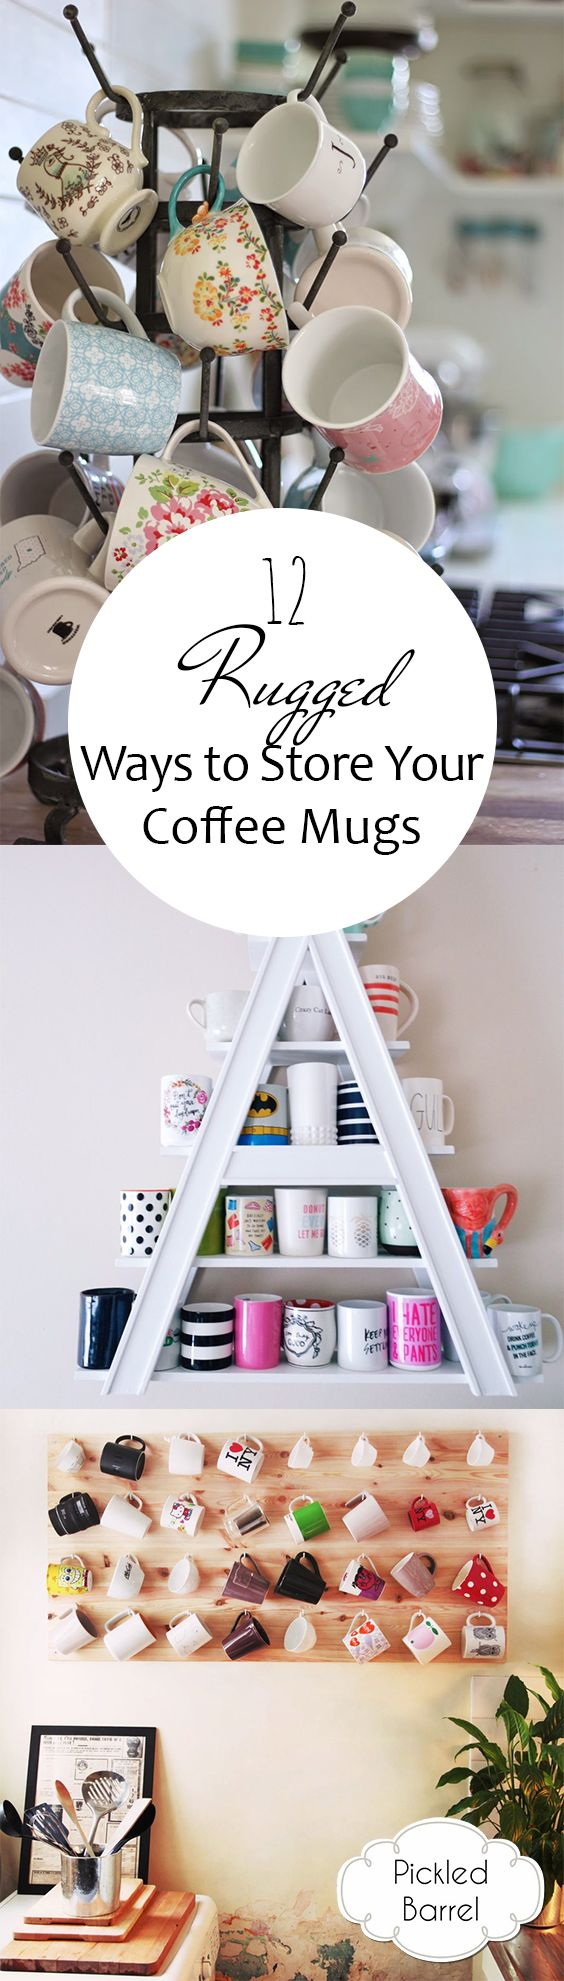 12 Rugged Ways to Store Your Coffee Mugs. How to Store Coffee Mugs, Coffee Mug Storage, How to Store Mugs, Storing Dishes, How to Store Dishes, DIY Kitchen, Kitchen Organization, How to Declutter Your Kitchen, Best DIY Pins